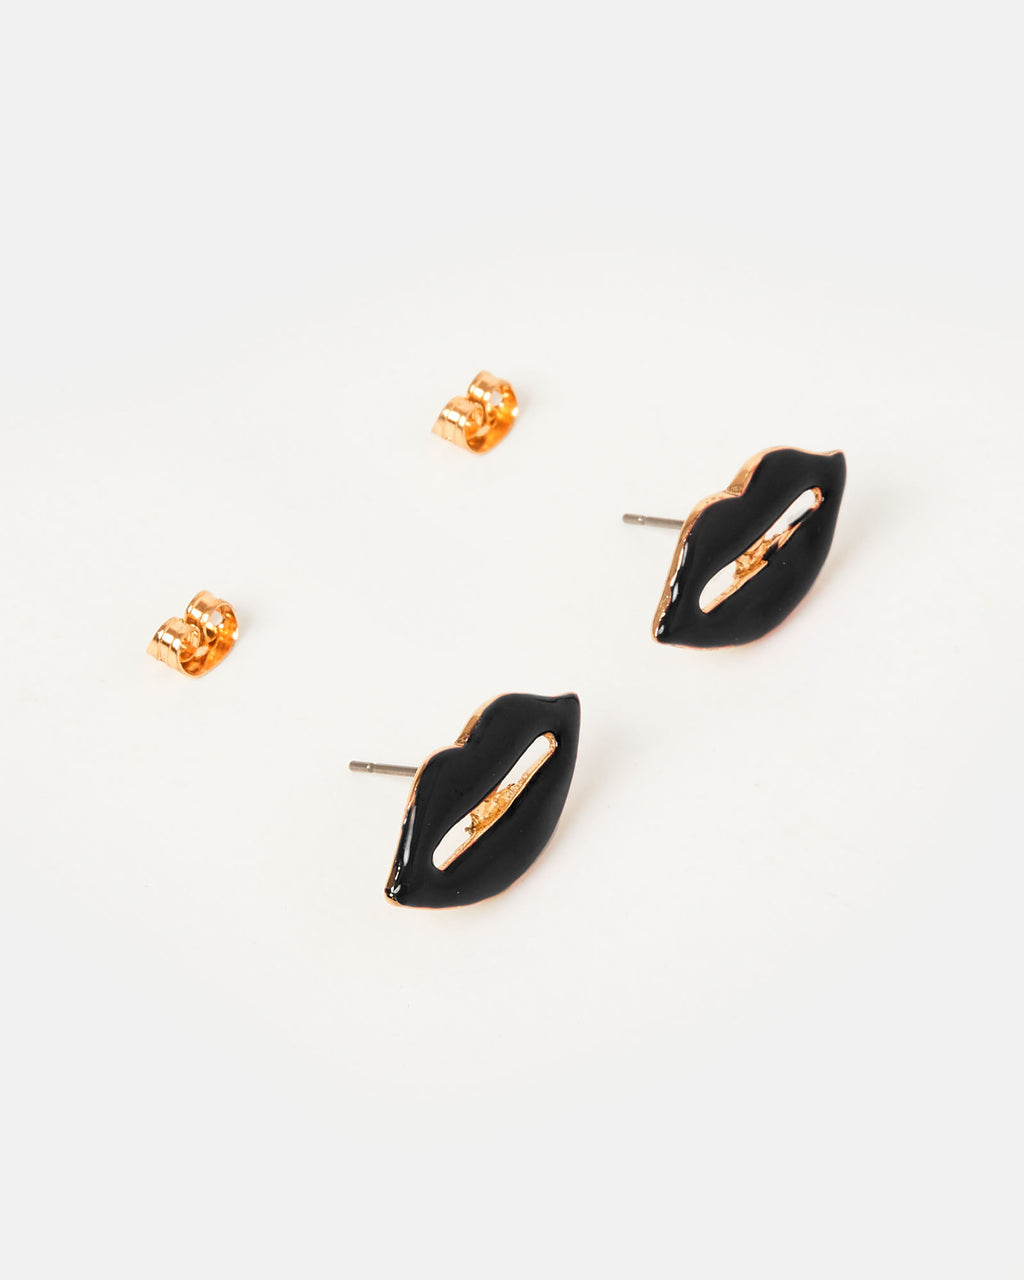 Izoa Kiss Stud Earrings Black